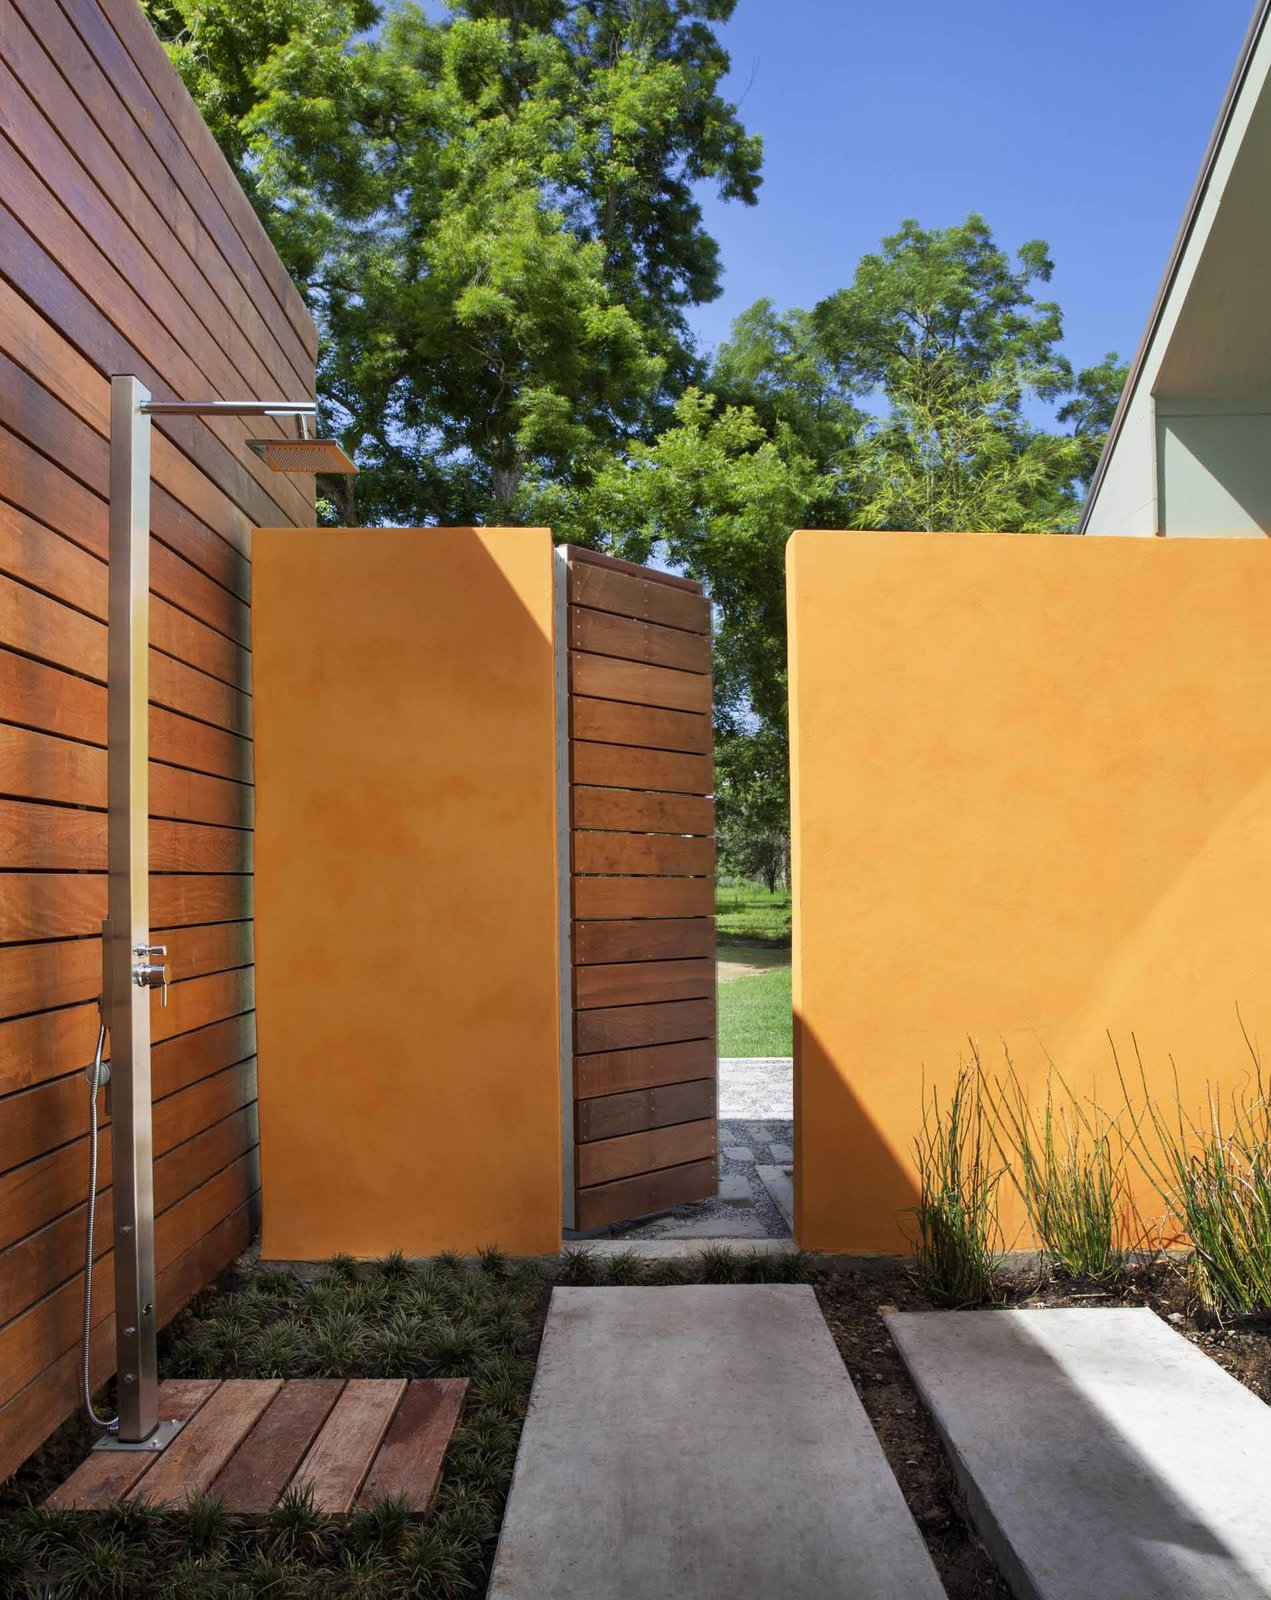 The shower offers a multisensory experience: the architect described how clients can take hot showers in the rain or simply lounge in the capacious garden area. Mint plants growing between the pavers release a pleasant smell when stepped upon.